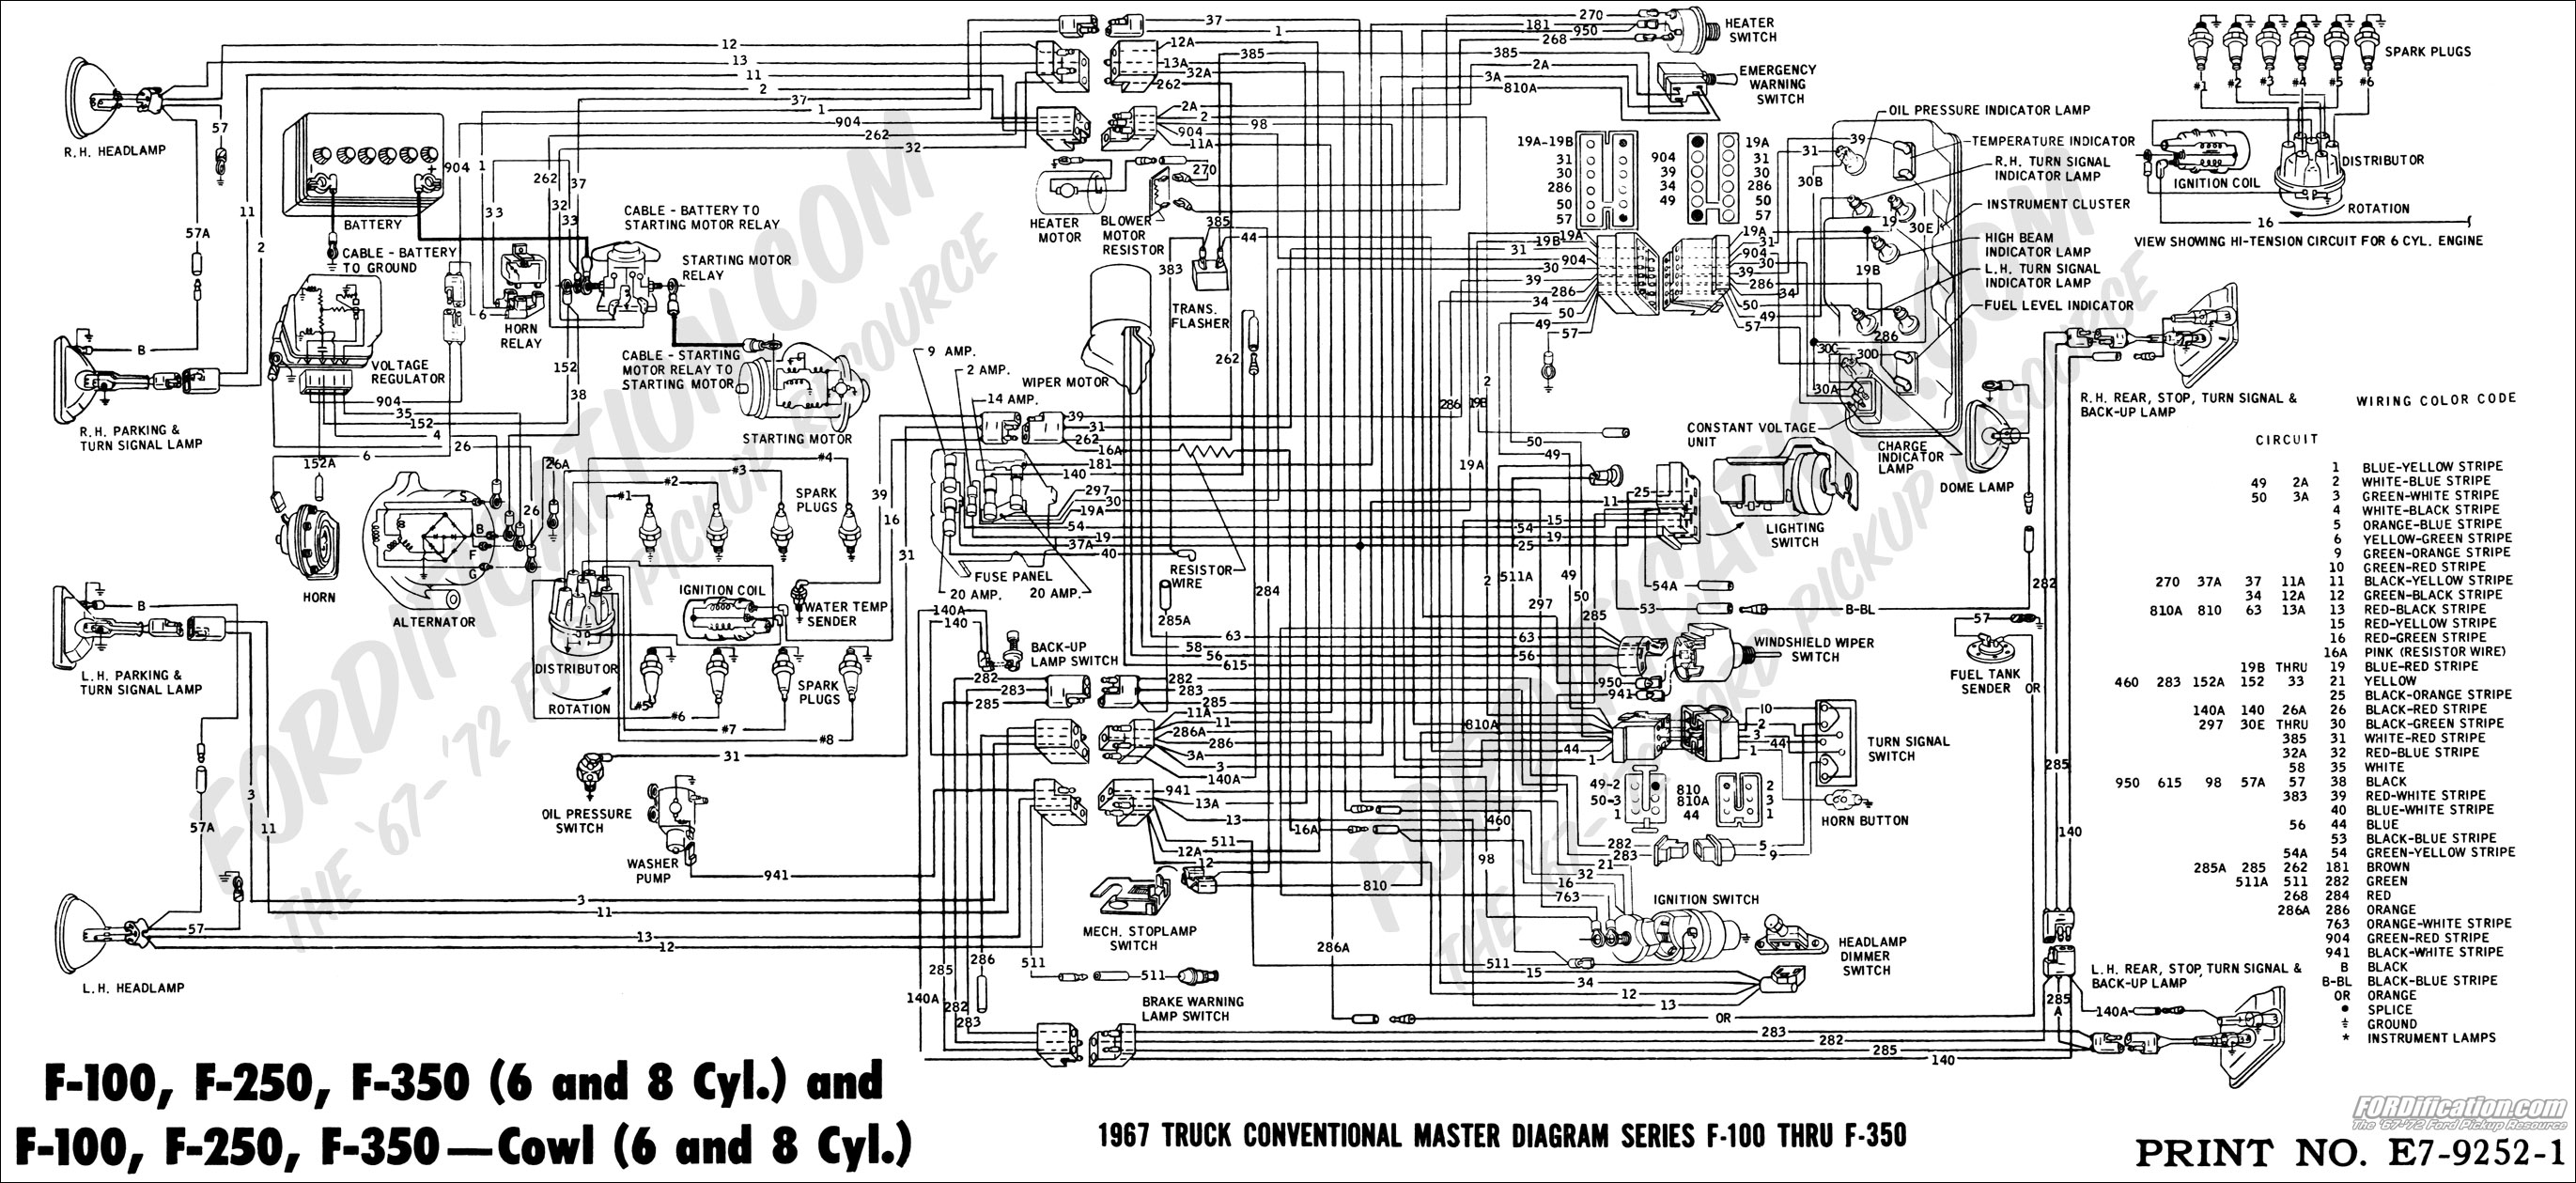 67masterdiagram free ford wiring diagrams 1998 ford mustang wiring diagrams ba falcon wiring diagram free download at nearapp.co